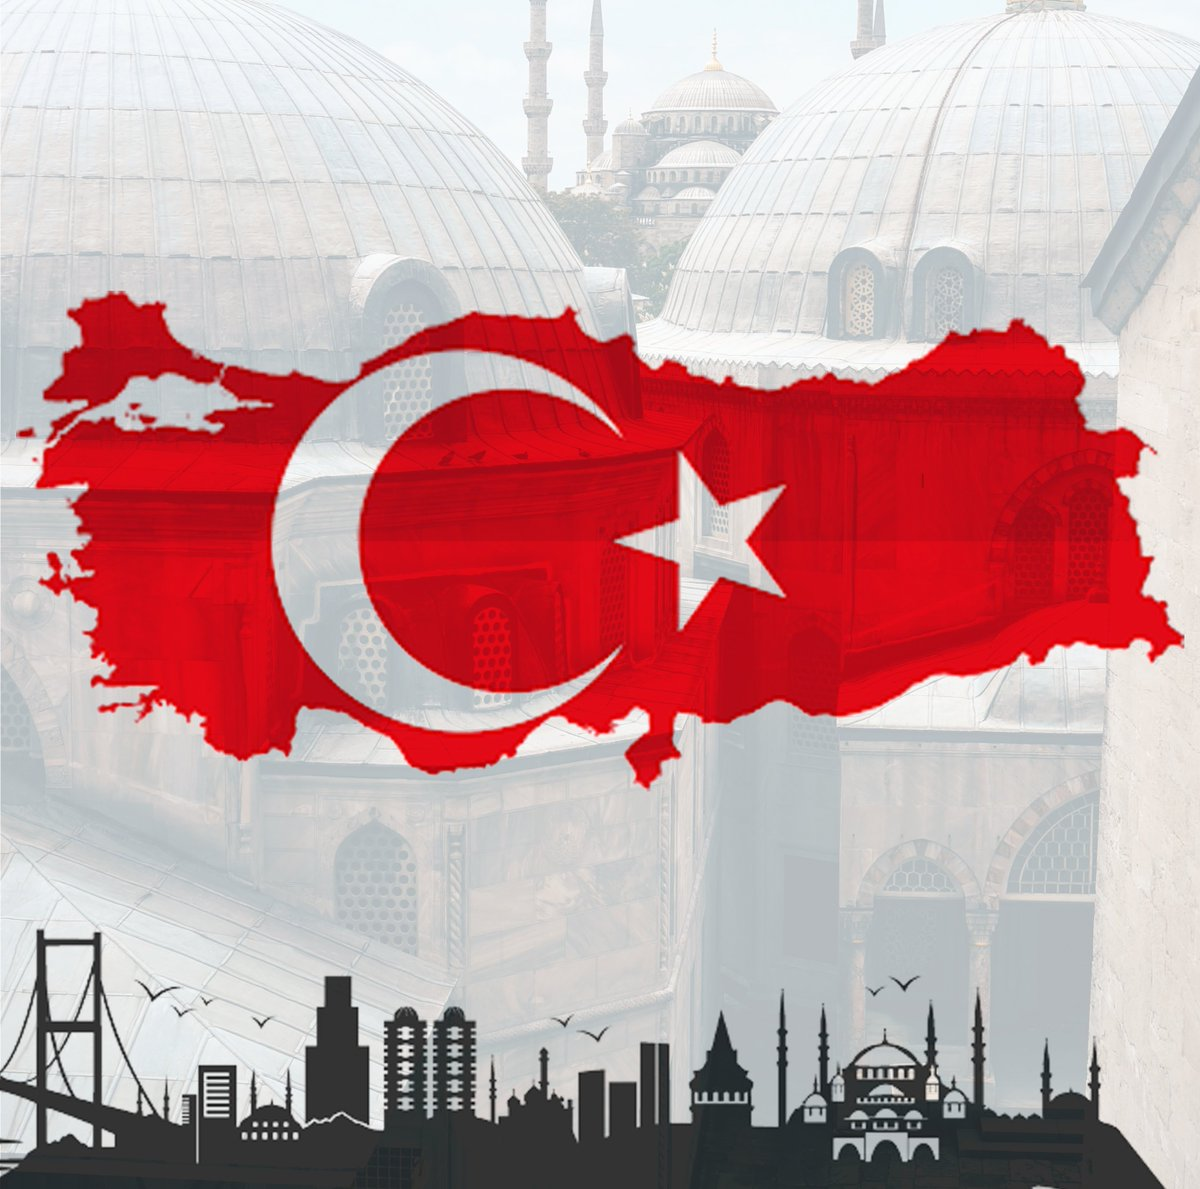 #prayforIstanbul We grieve w/our brothers+sisters, offering heartfelt prayers. https://t.co/m2PlupiRC7